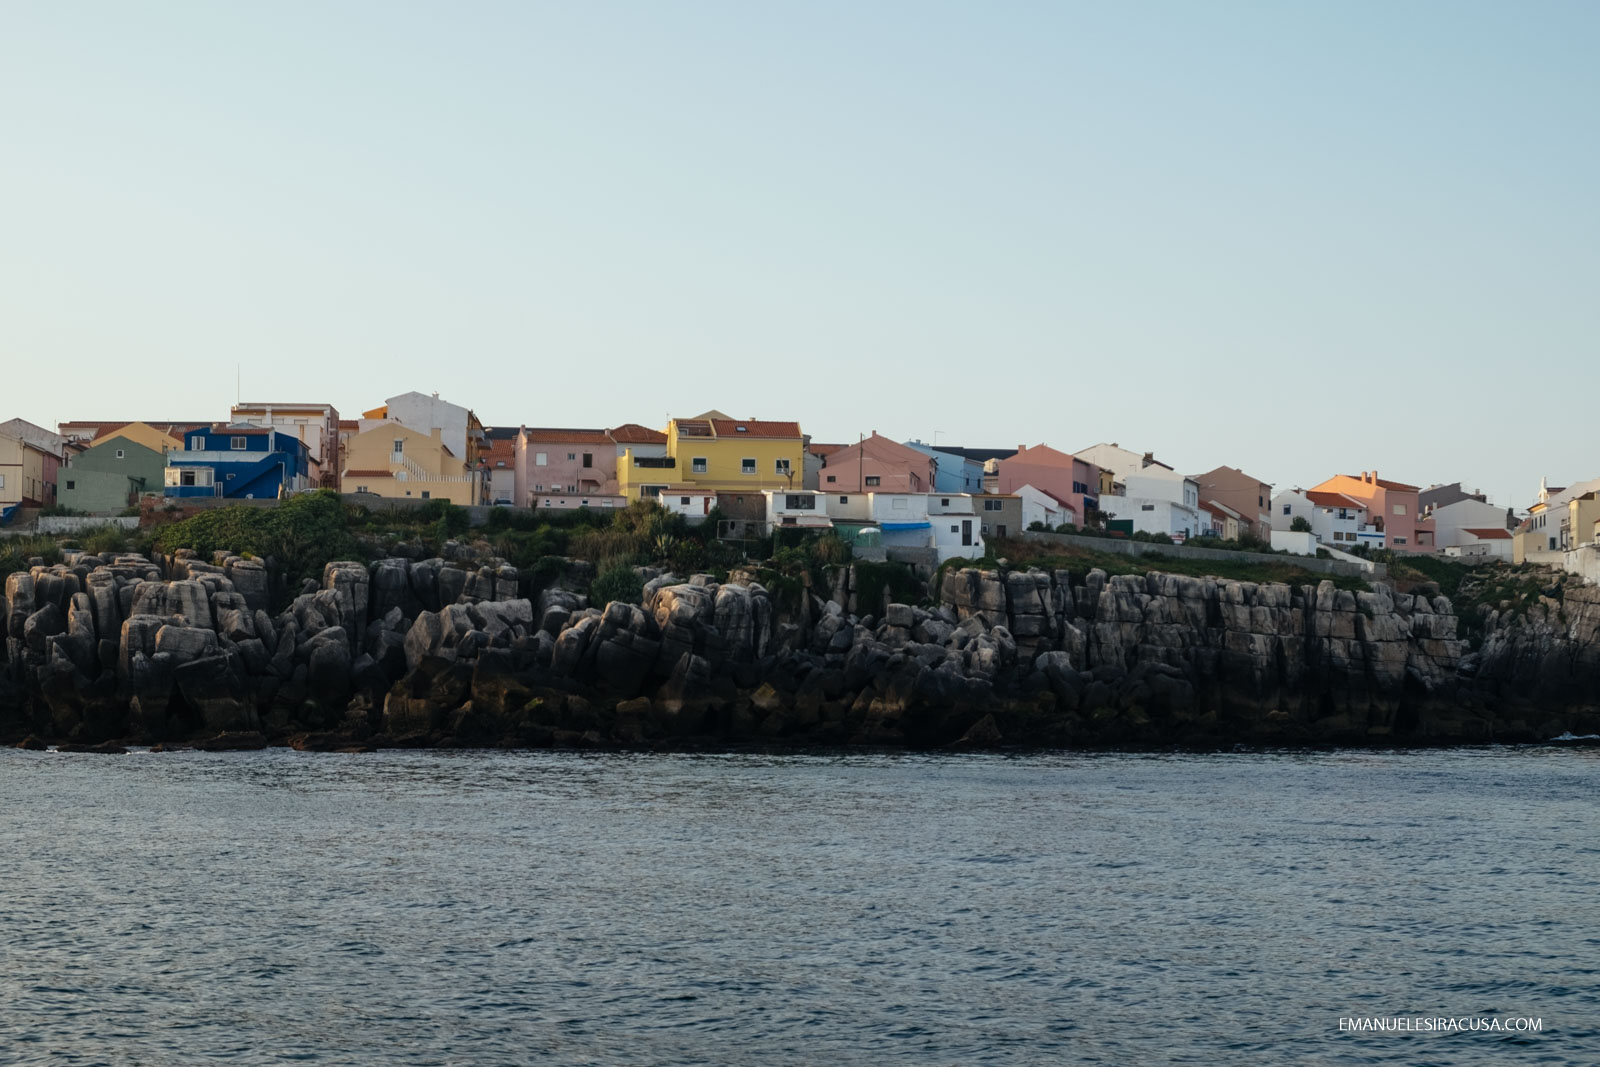 Emanuele Siracusa - Centro de Portugal - Oeste - Peniche from the sea-3